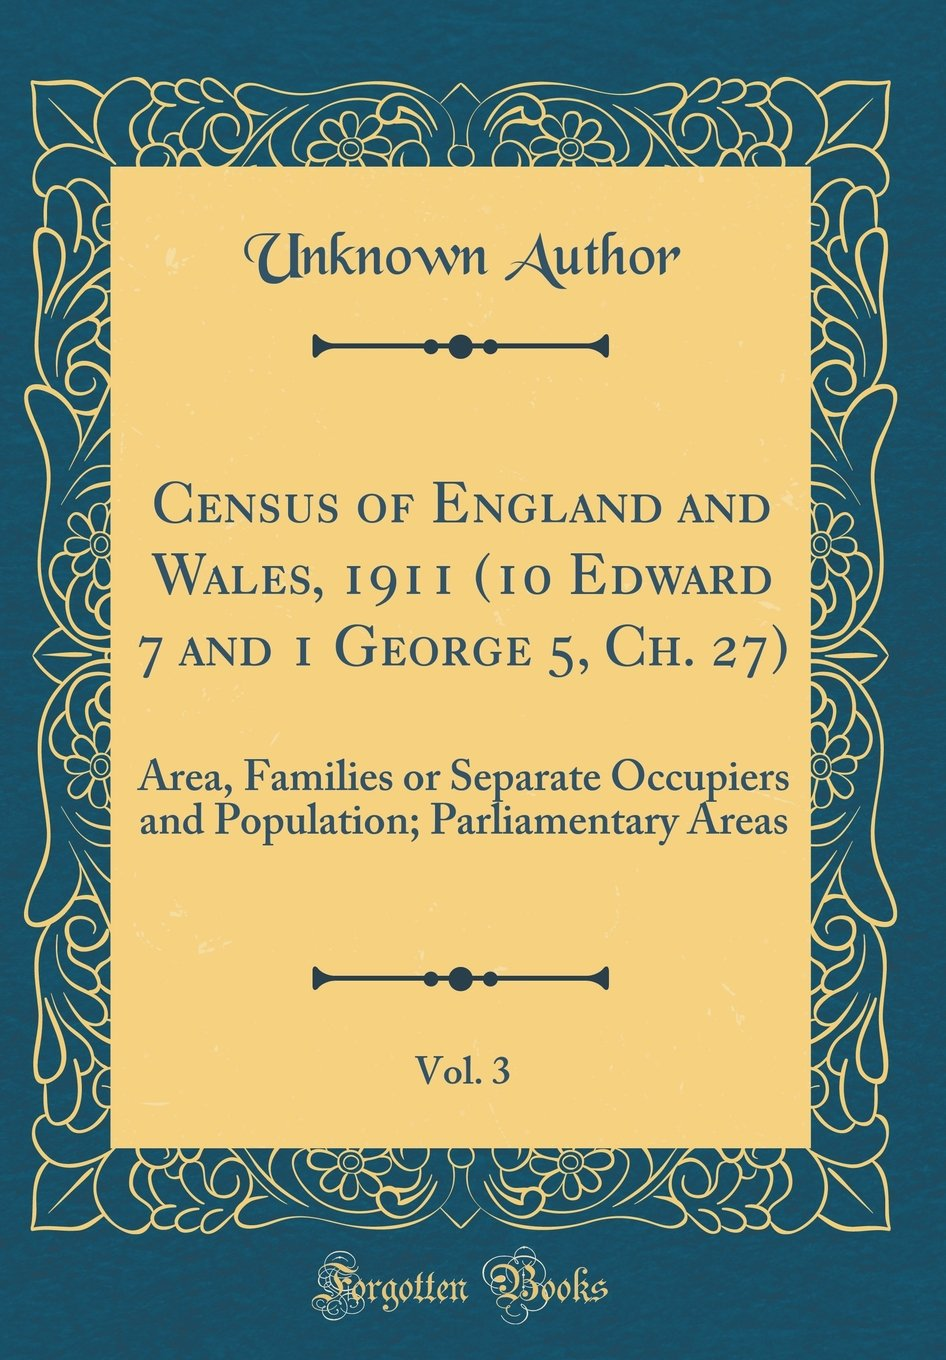 Census of England and Wales, 1911 (10 Edward 7 and 1 George 5, Ch. 27), Vol. 3: Area, Families or Separate Occupiers and Population; Parliamentary Areas (Classic Reprint) pdf